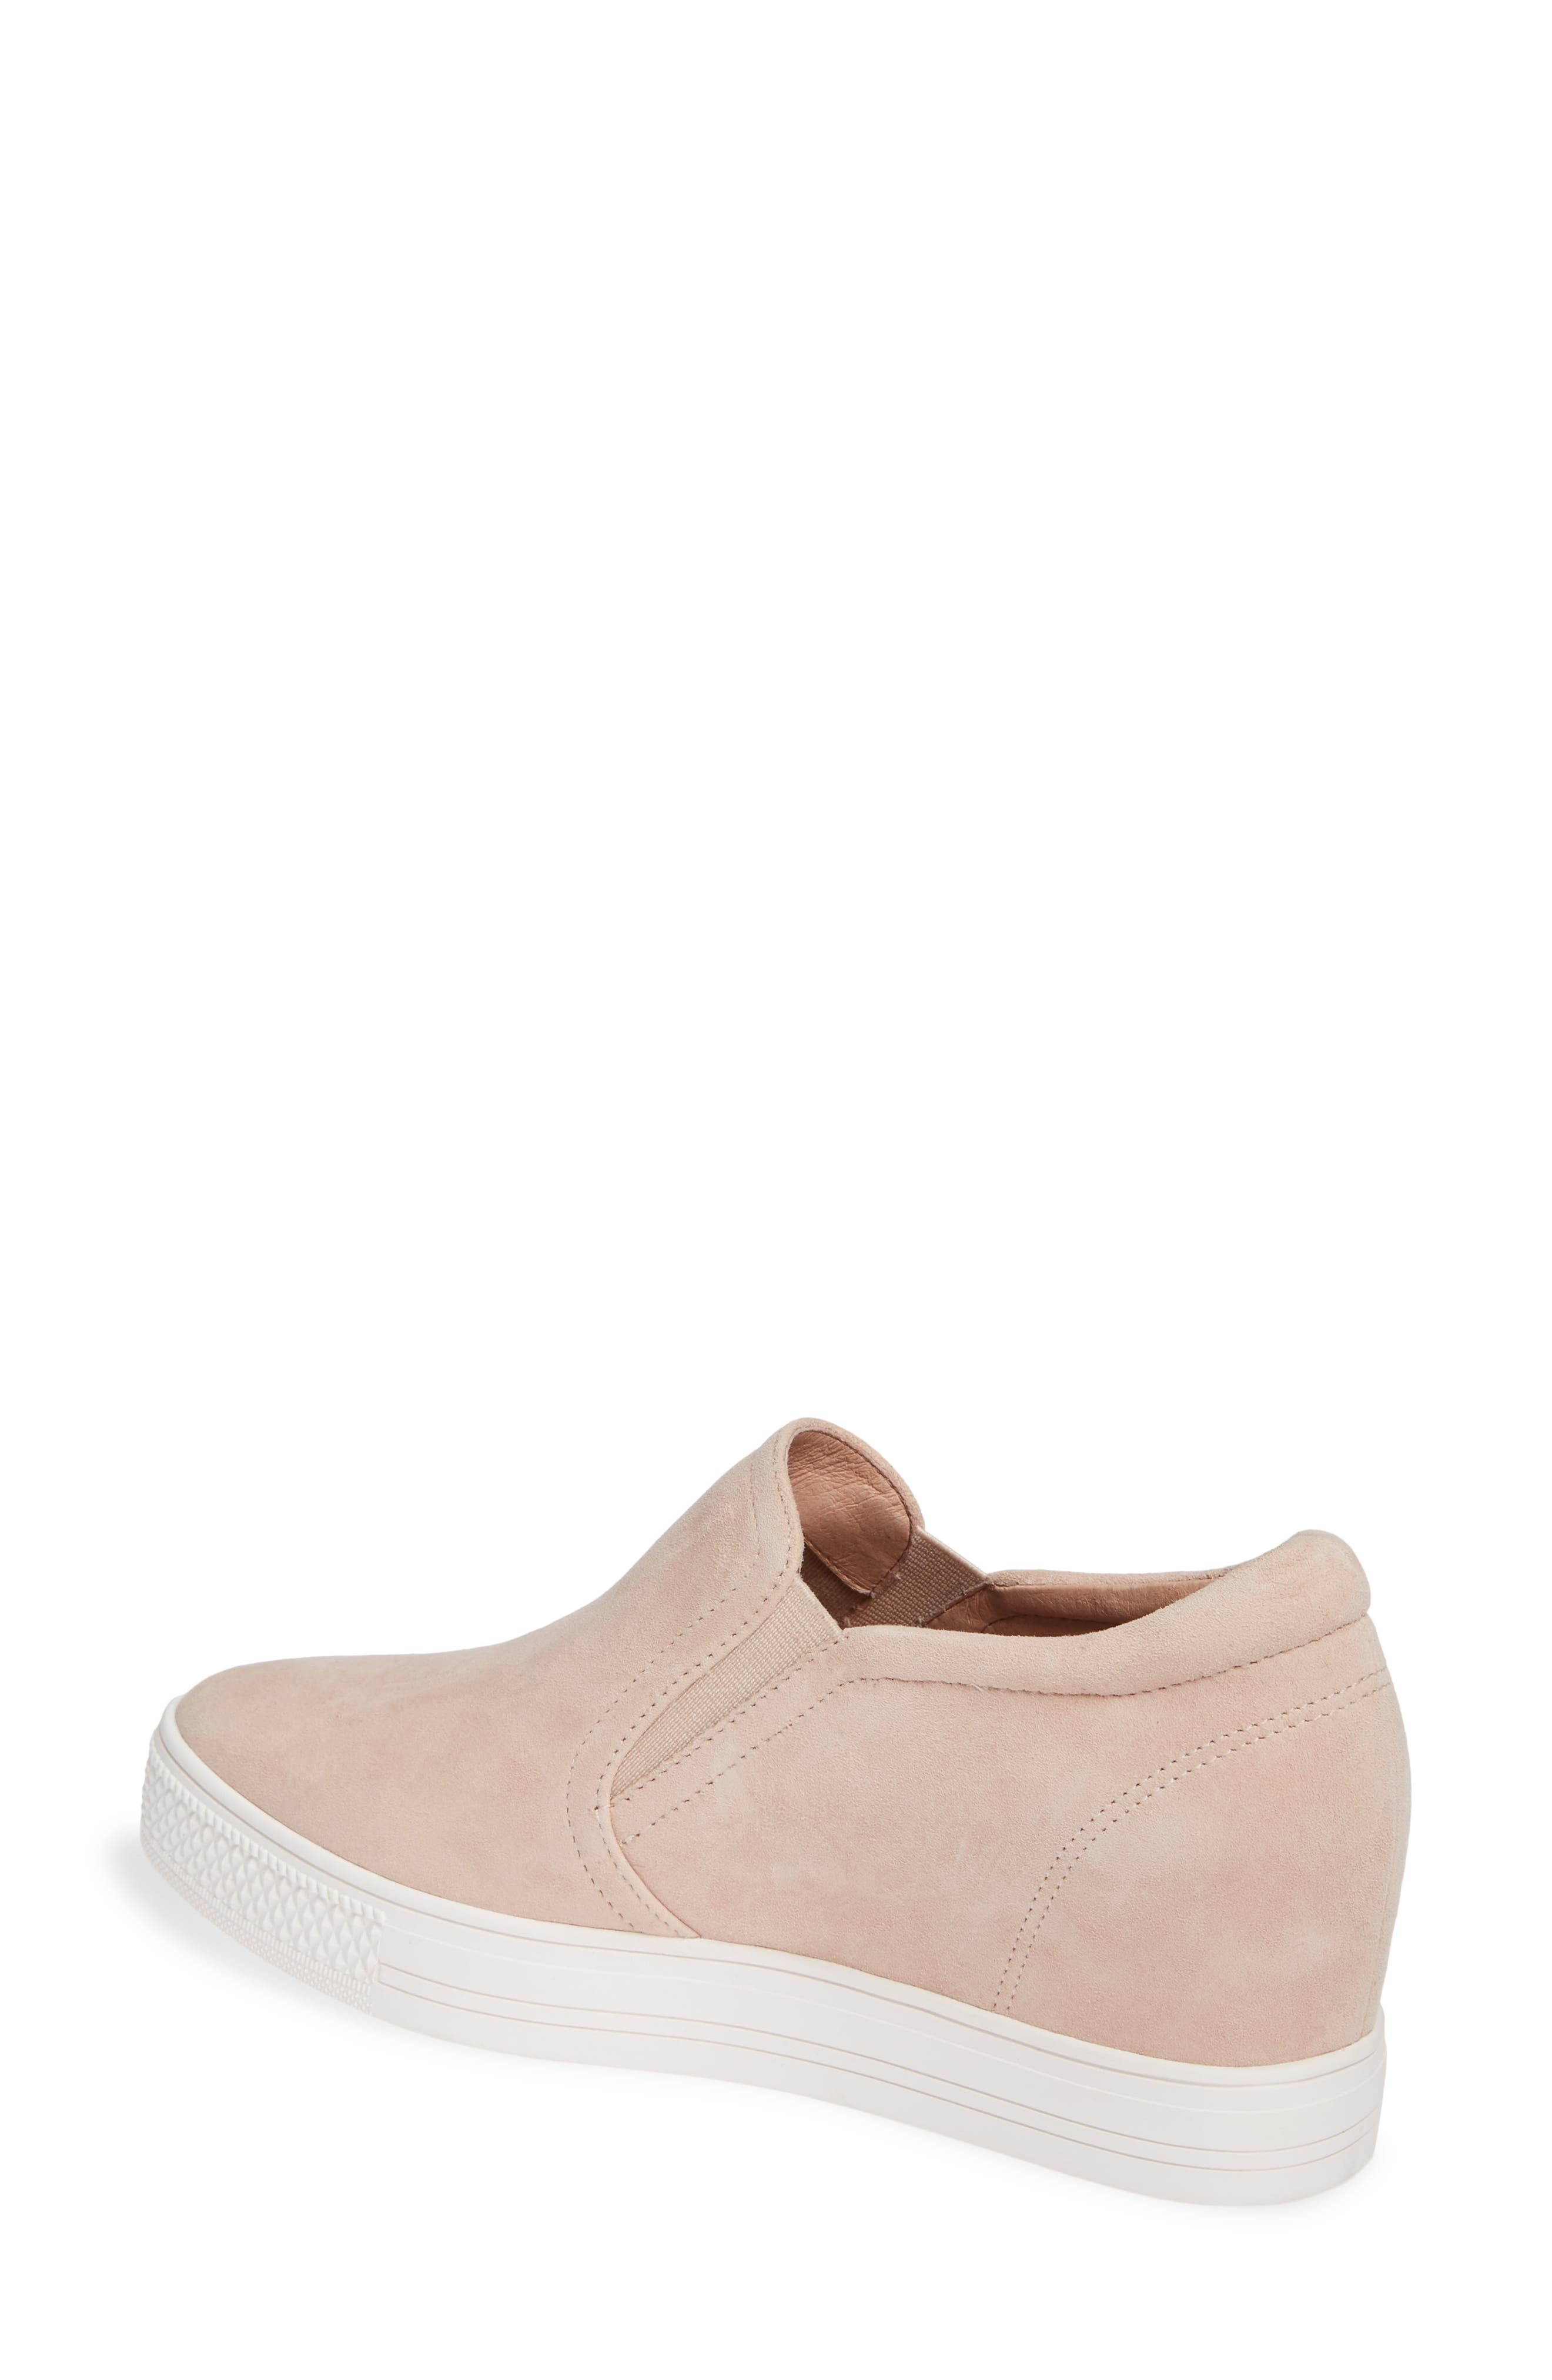 4a99164a064 Caslon® Wedge Sneakers for Women